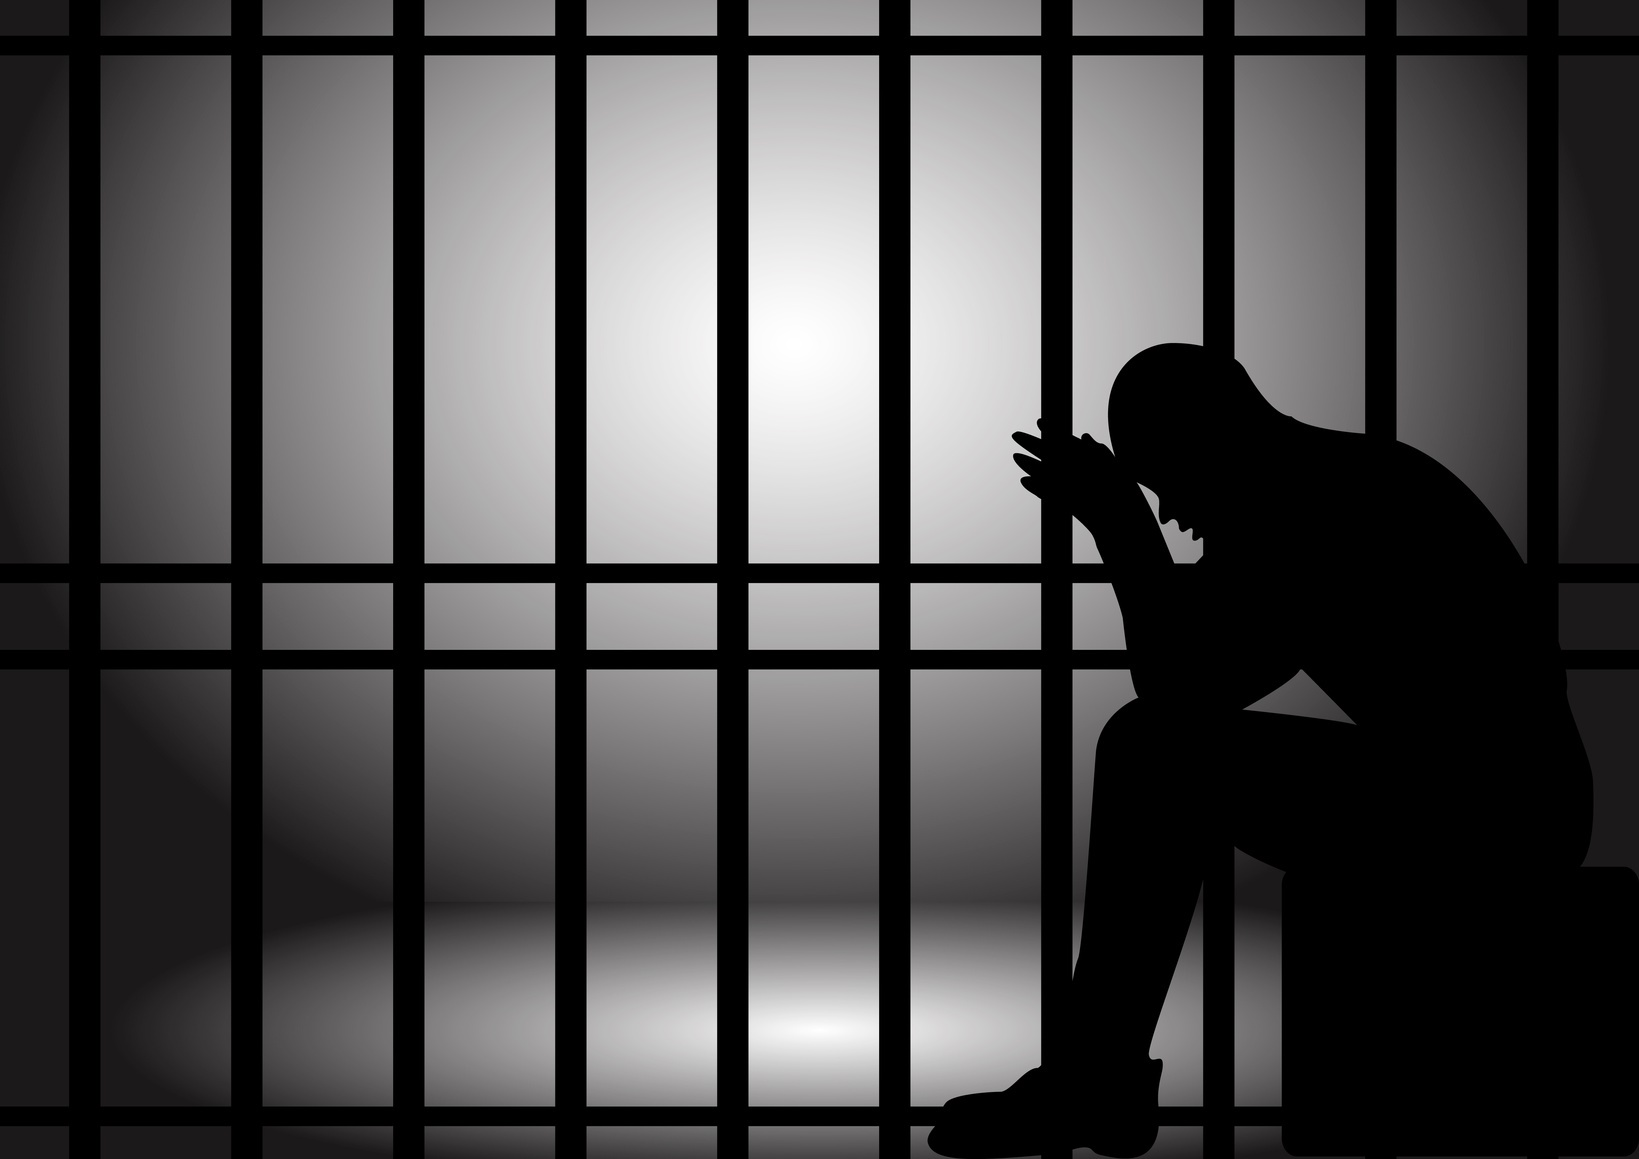 locking up prisoners with mental health problems is both cruel and